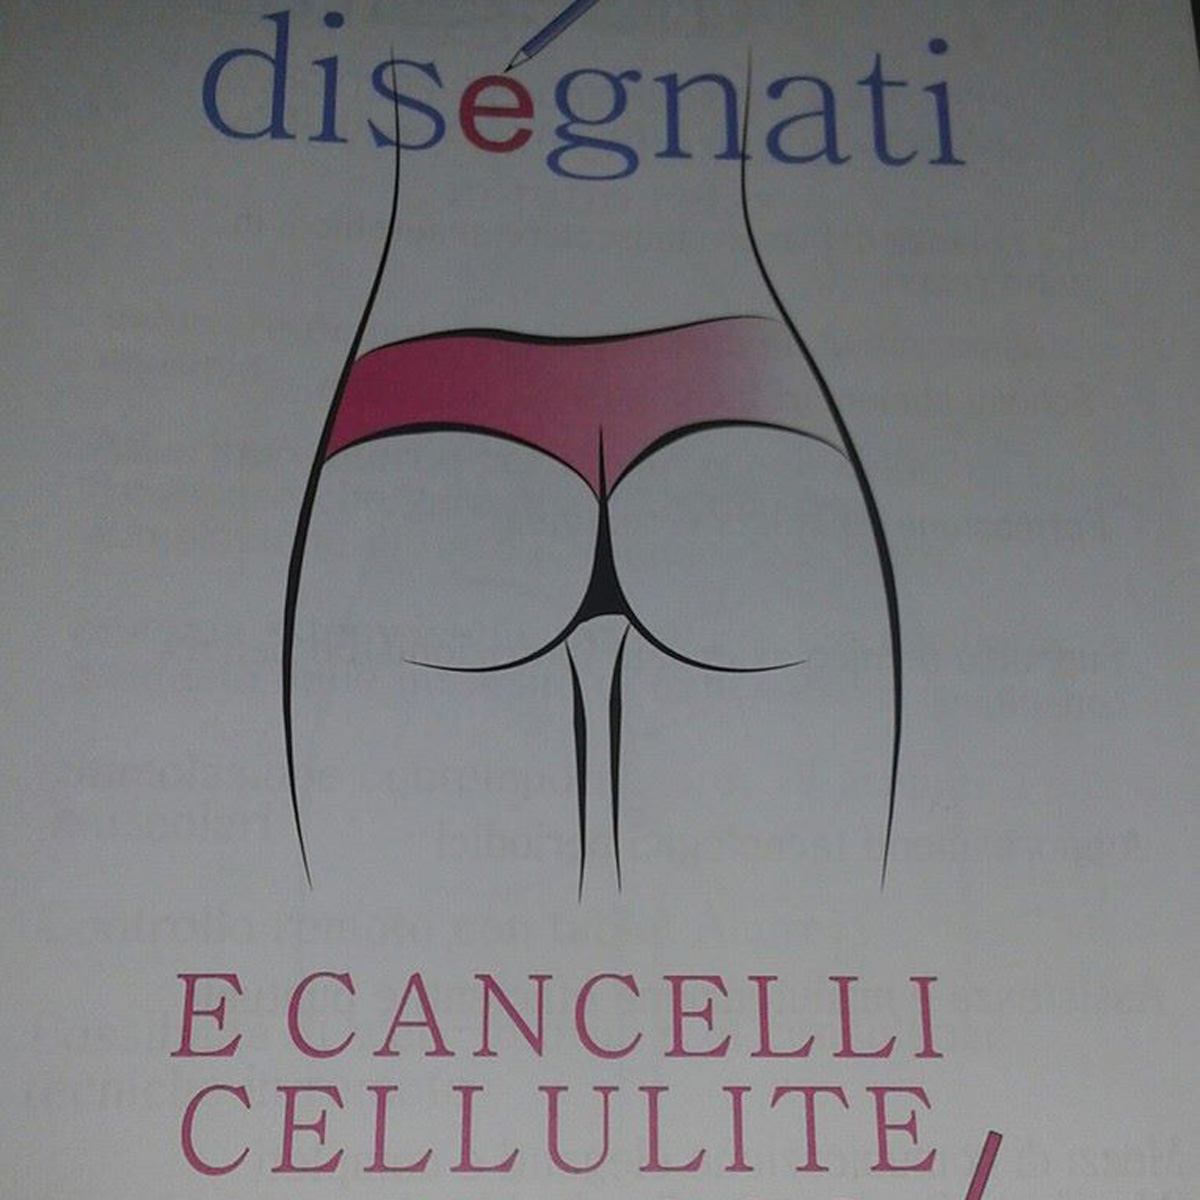 Cancelli Cellulite